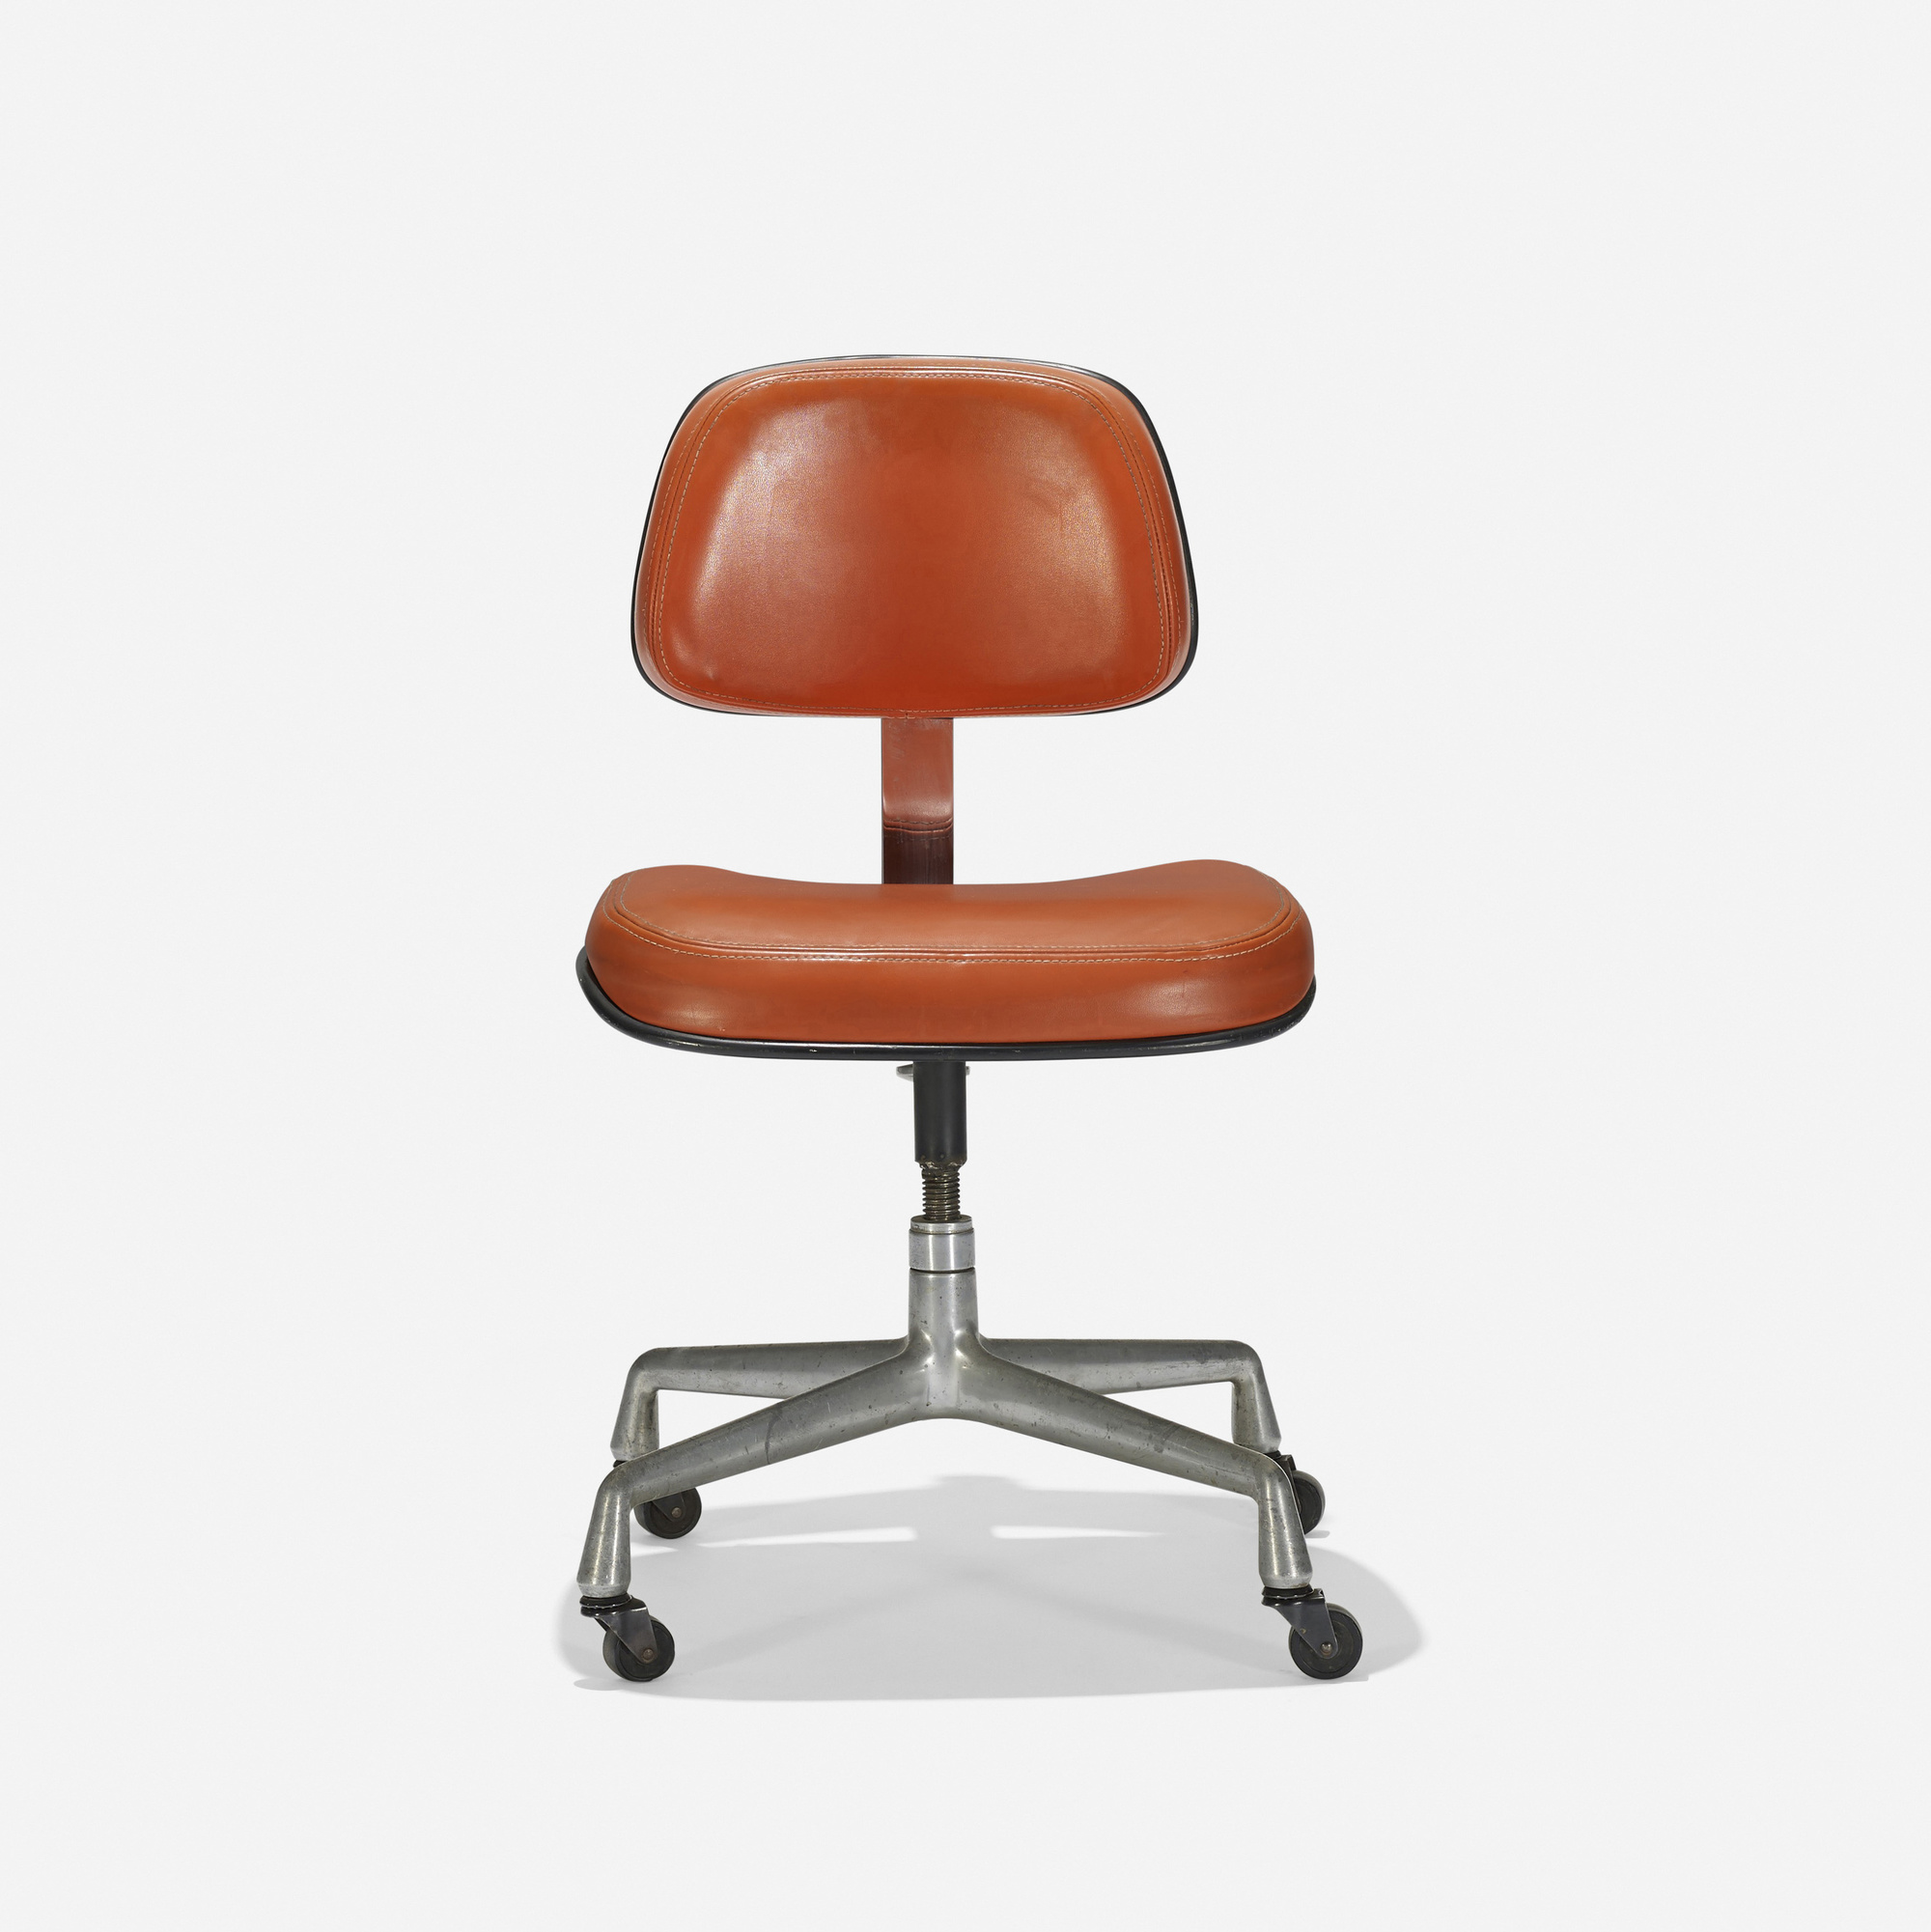 253: Charles and Ray Eames / Secretarial chair, model EC228 (1 of 2)